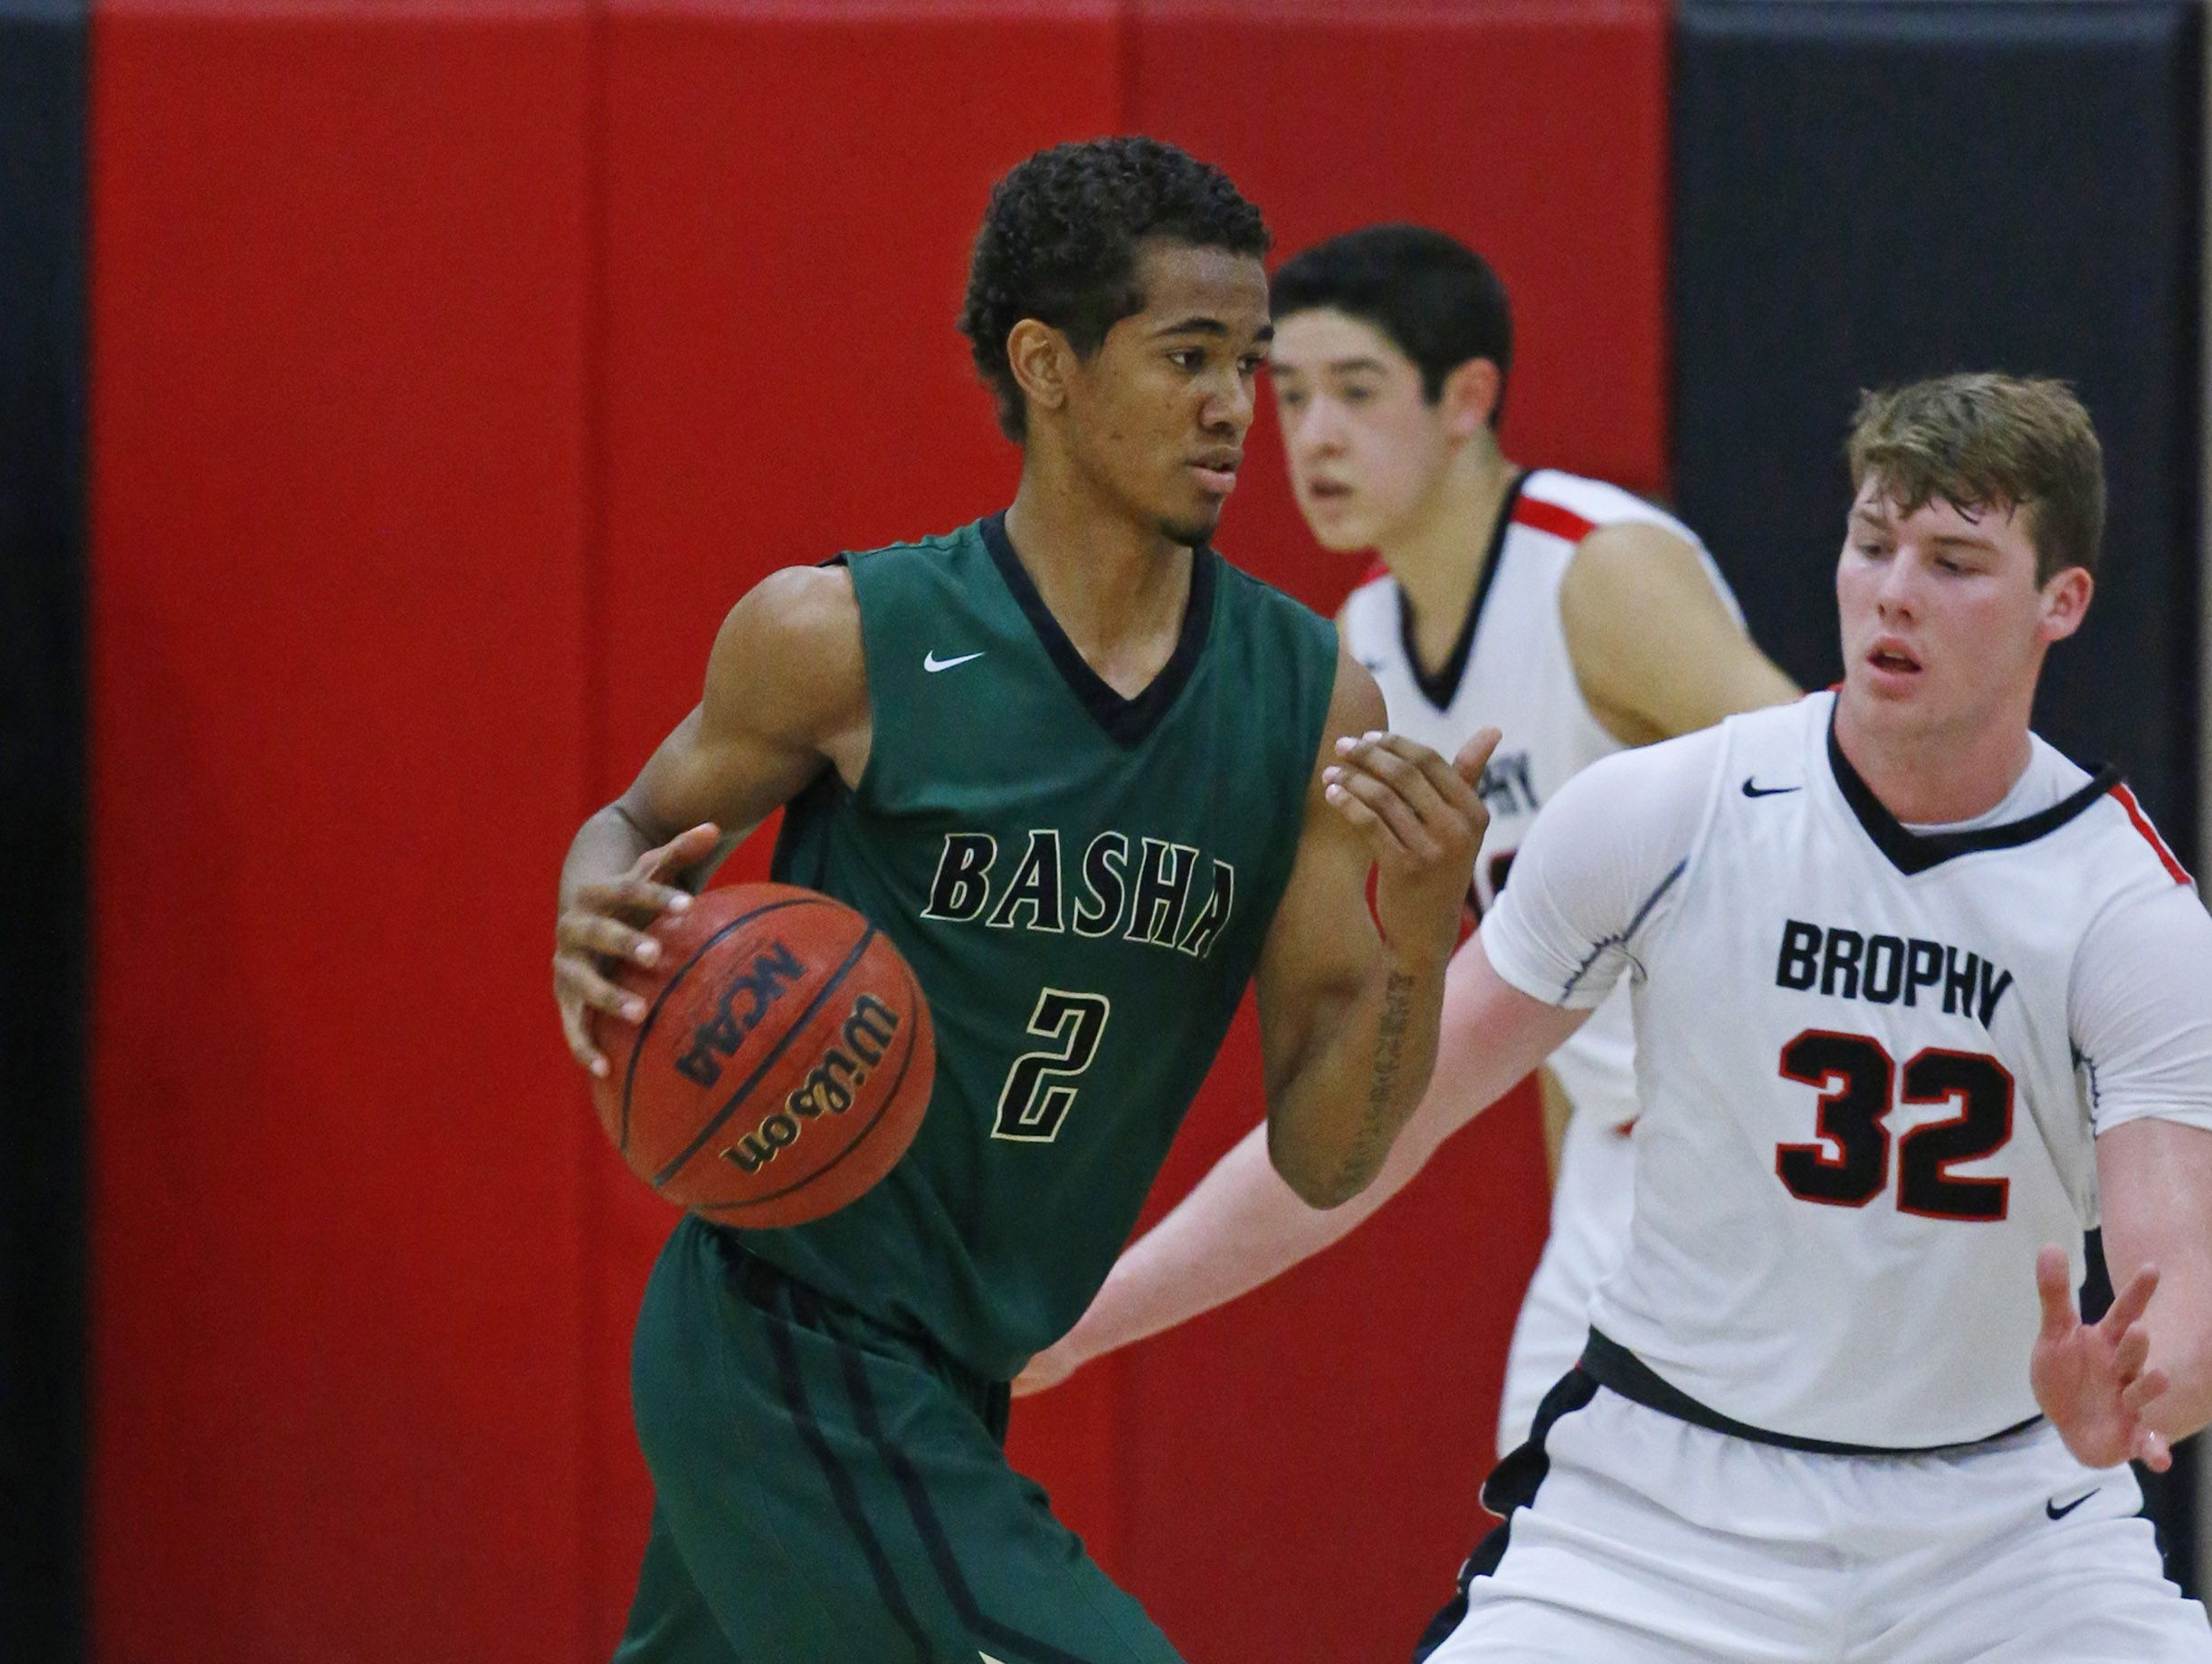 Basha's Terrell Brown works against Brophy College Prep's Matthew Kempton in their game Wednesday 4, 2017 in Phoenix, Arizona.